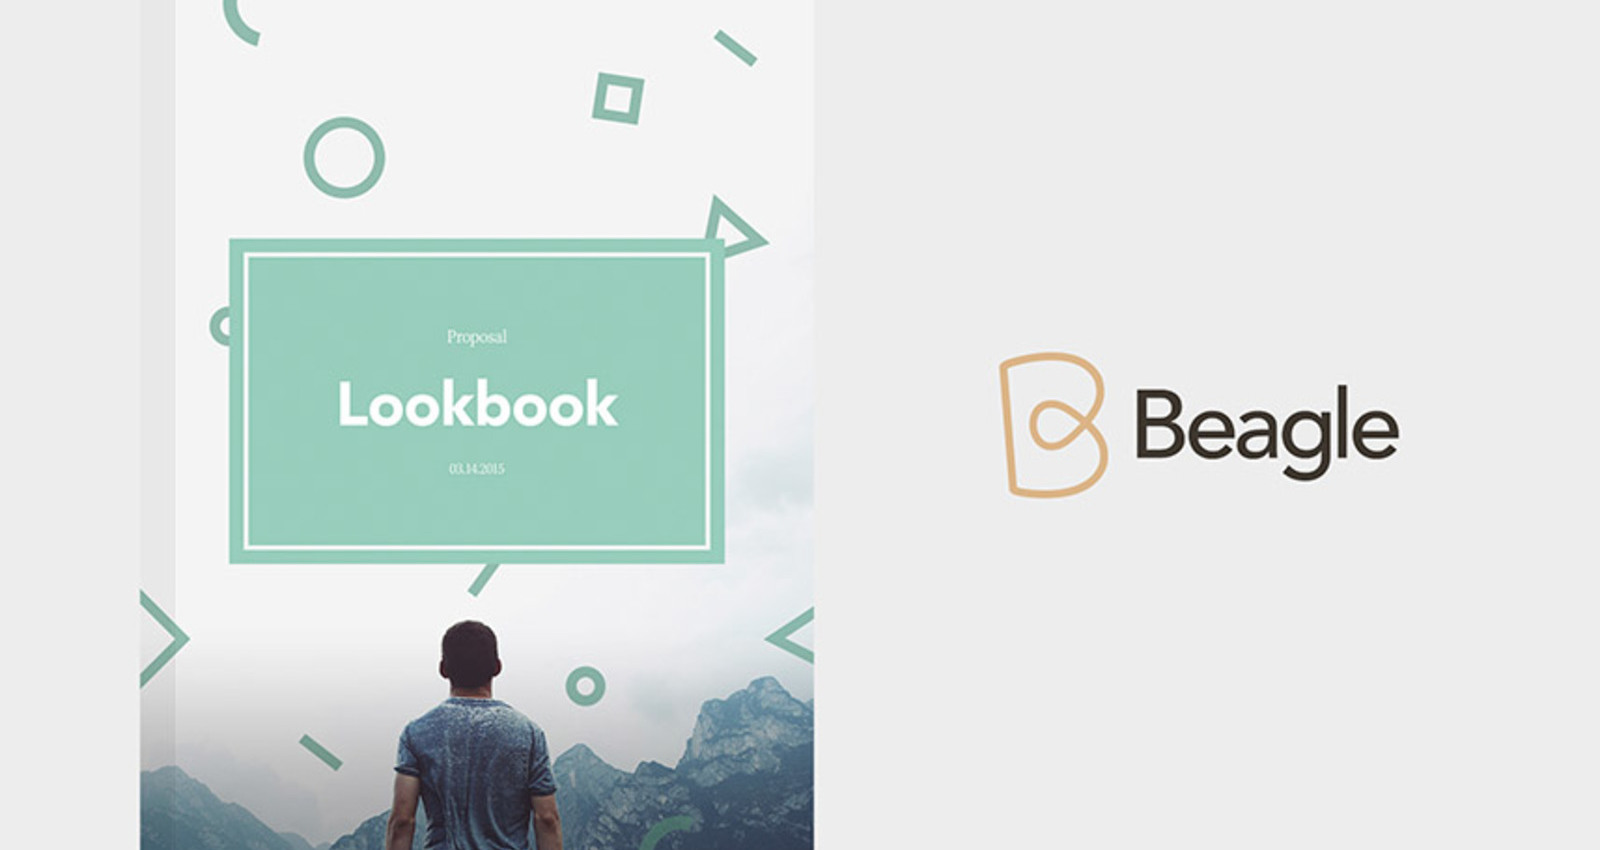 Beagle - a tool for creating better proposals